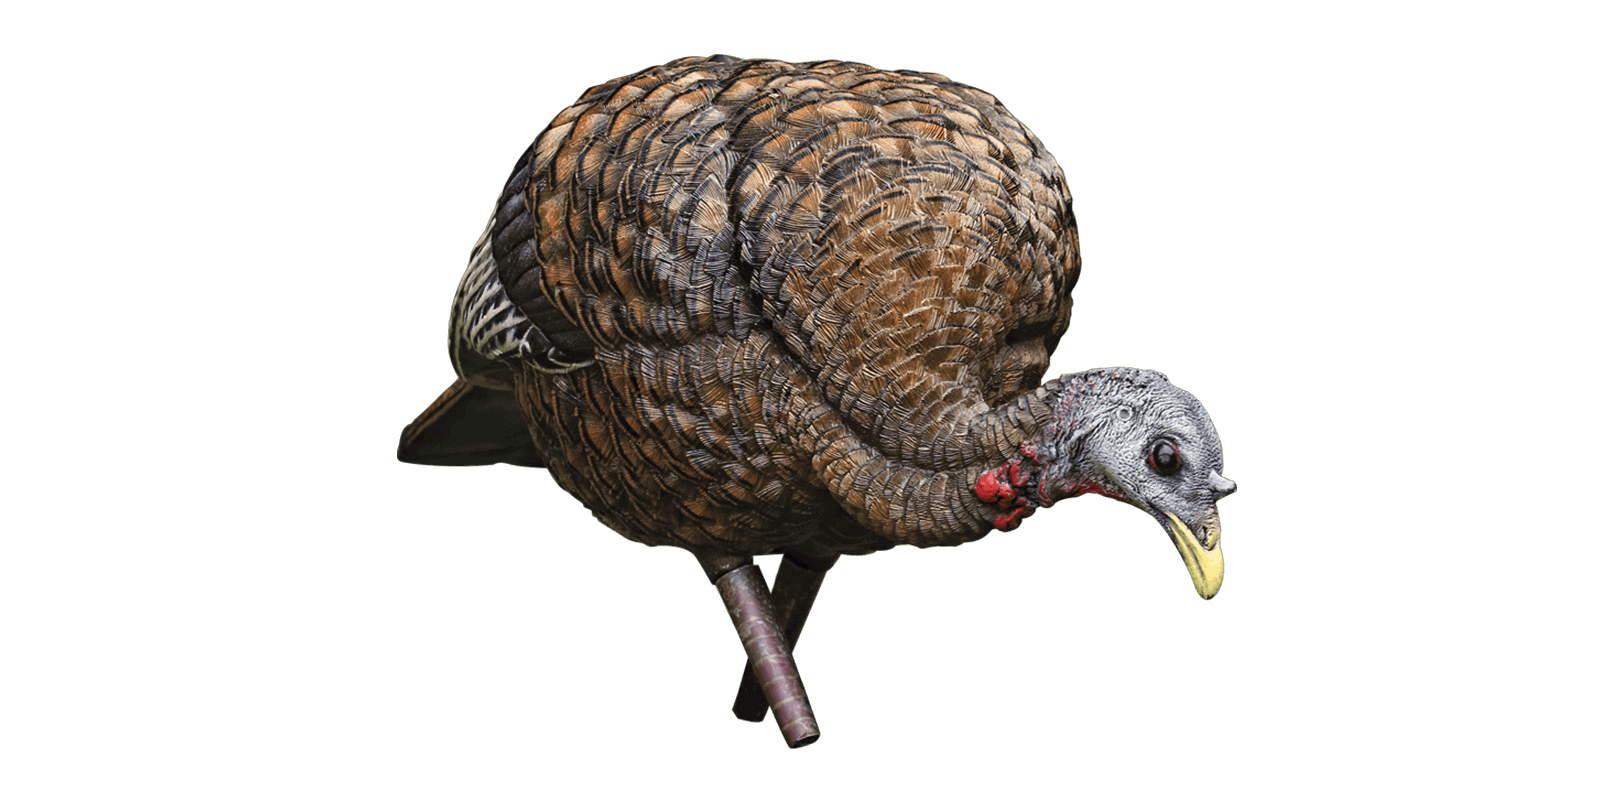 4250e9b9a379f The LCD Feeder Hen draws gobblers in close to set up the perfect kill shot.  As the gobbler gets closer, the LCD Feeder's ultra-detailed paint schemes  with ...